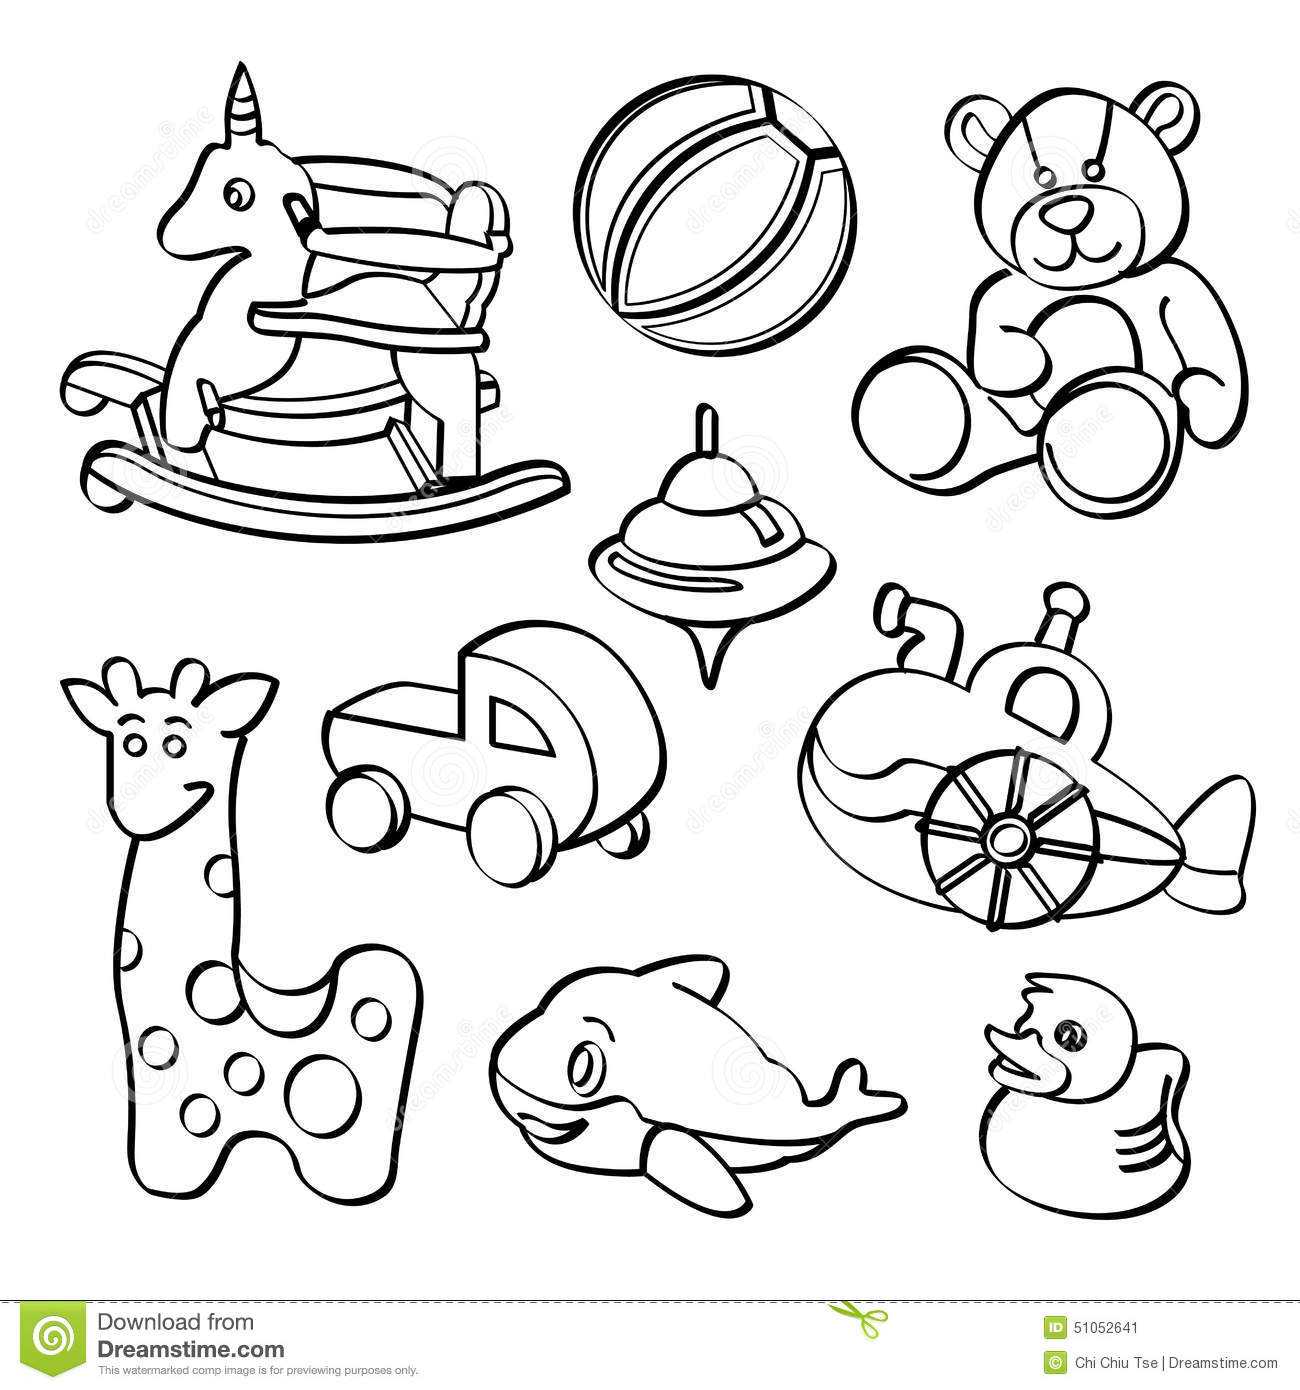 Stock Illustration Transportation Toys Collection Different Kinds Sketch Style Contains Hi Res   Pdf Illustrator Files Image51052641 on car audio art